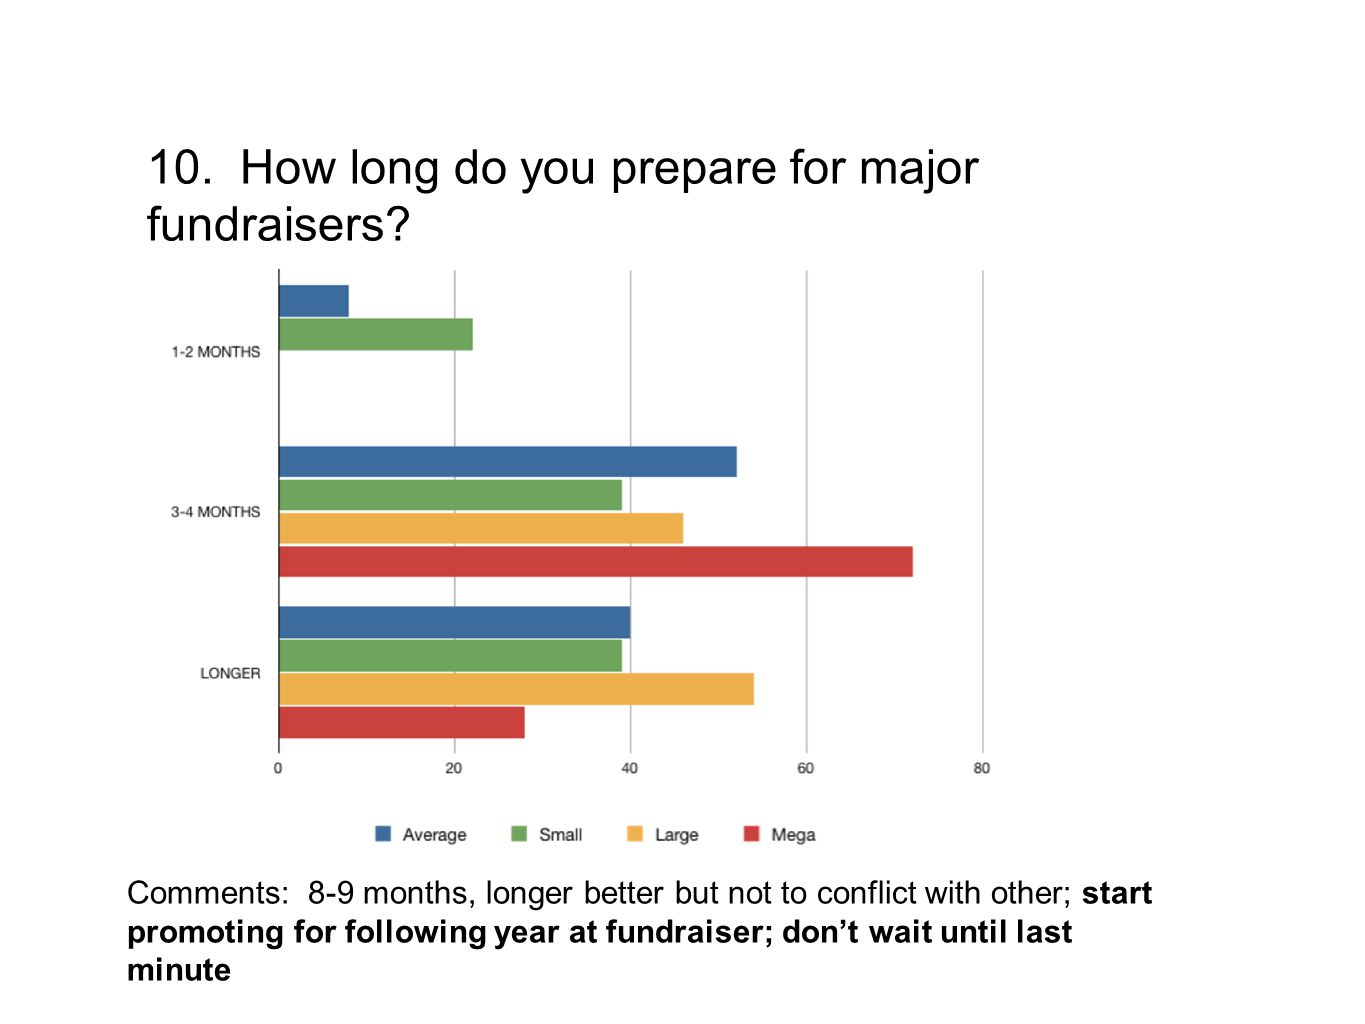 10. How long do you prepare for major fundraisers.